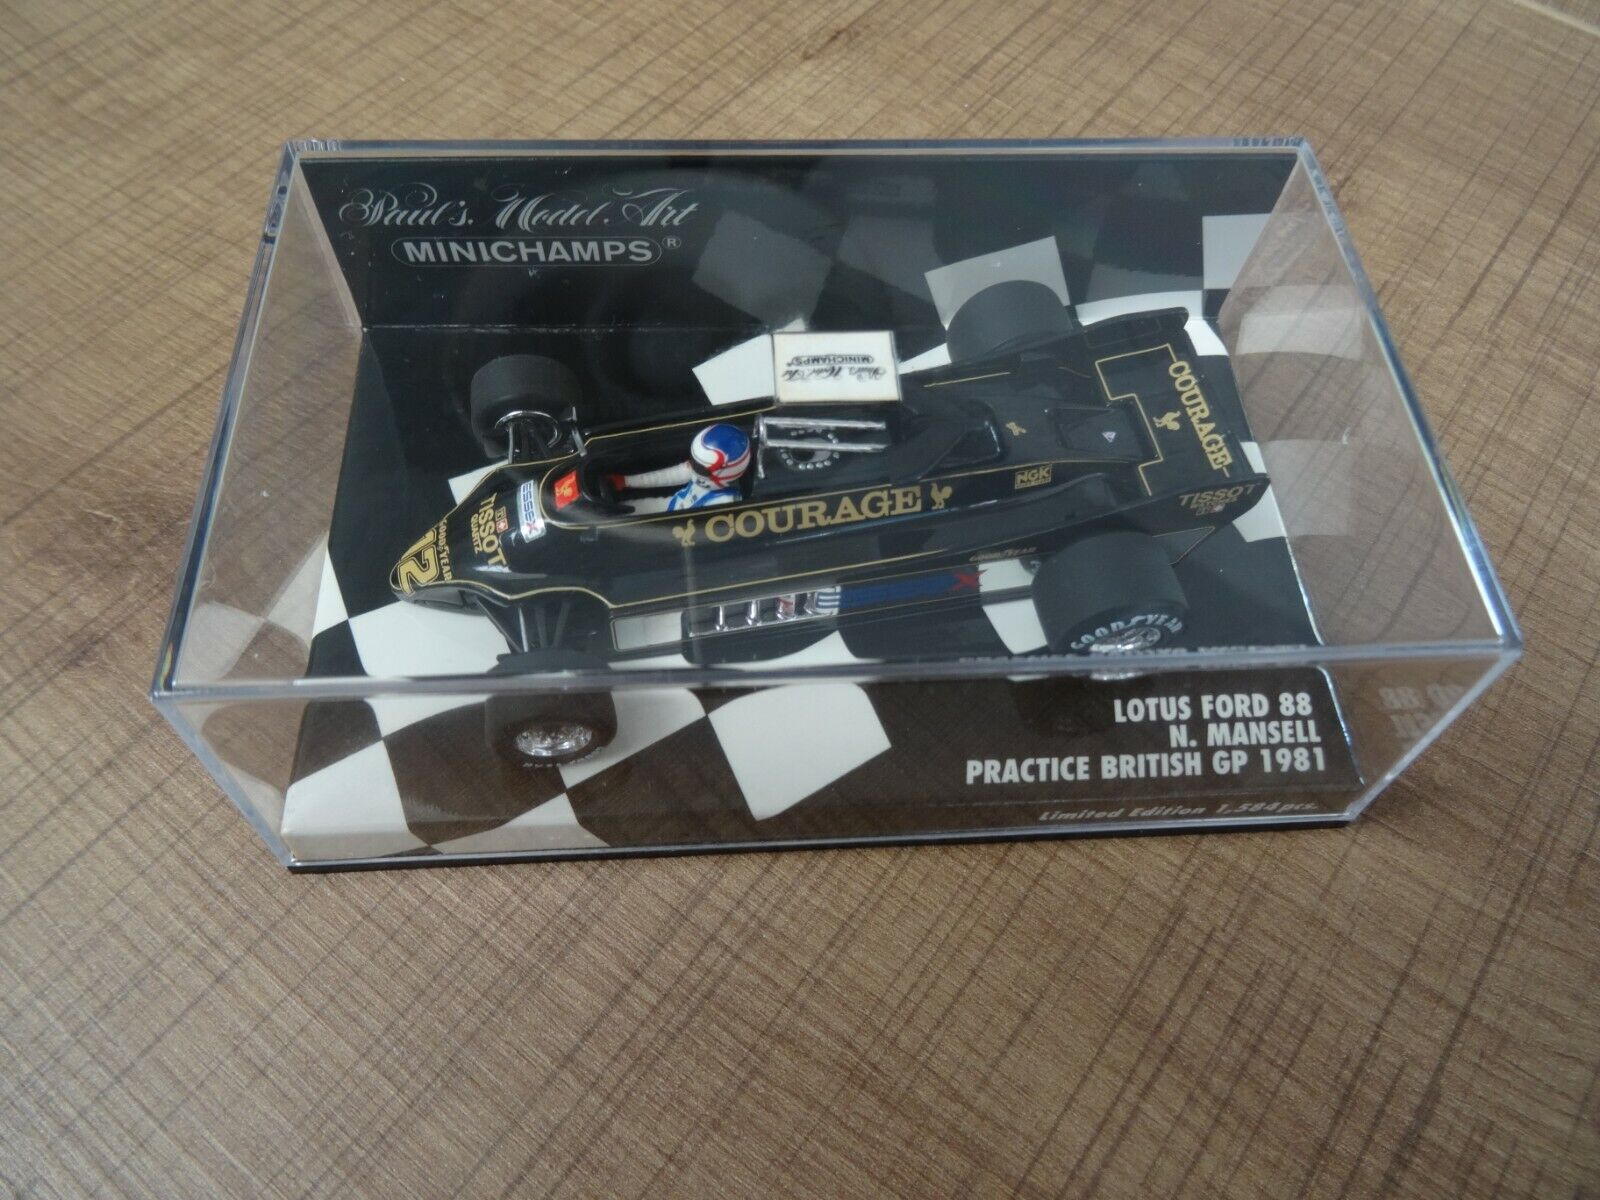 MINICHAMPS 1 43 LOTUS FORD 88 MANSELL PRACTICE BRITISH GP 1981 LIM. ED. 1584 PCS